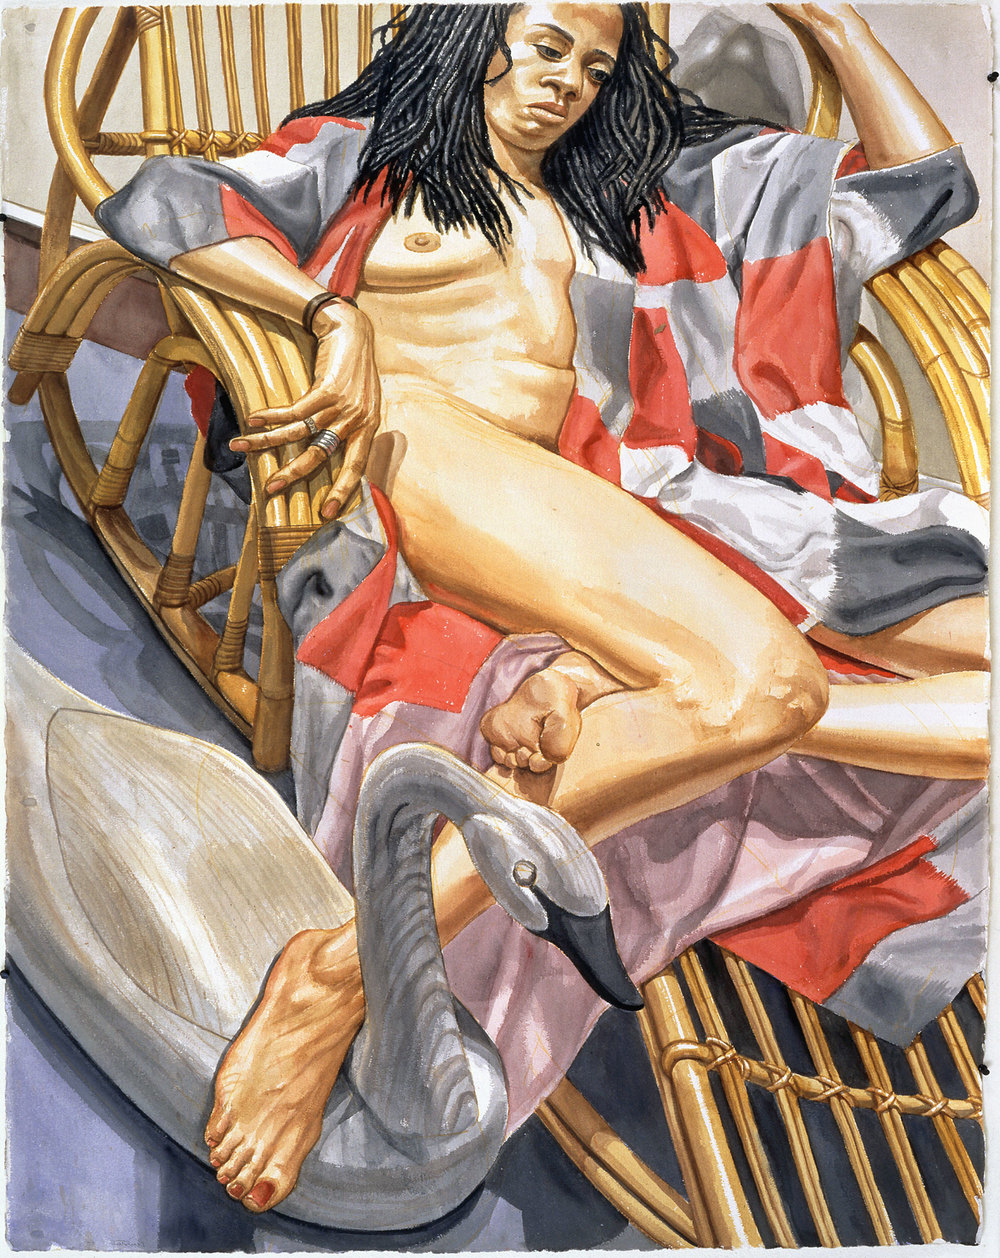 NUDE ON BAMBOO CHAISE WITH SWAN DECOY  ,  1997 Watercolor on paper 60 x 40 1/2 inches